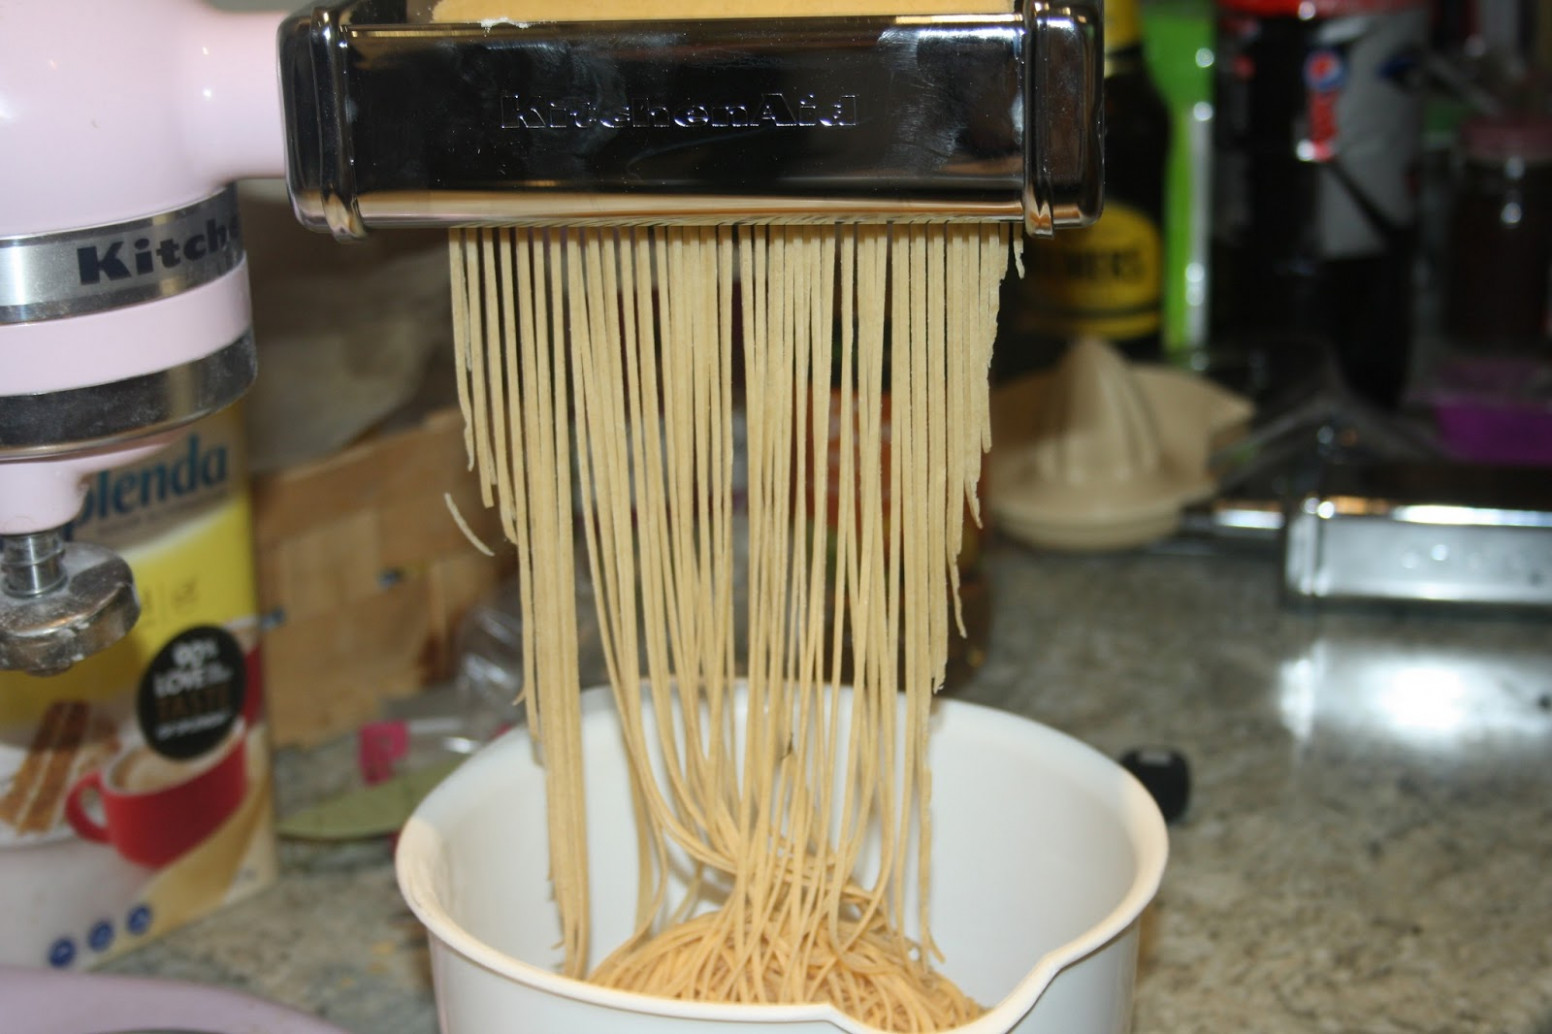 pasta-recipes-kitchenaid